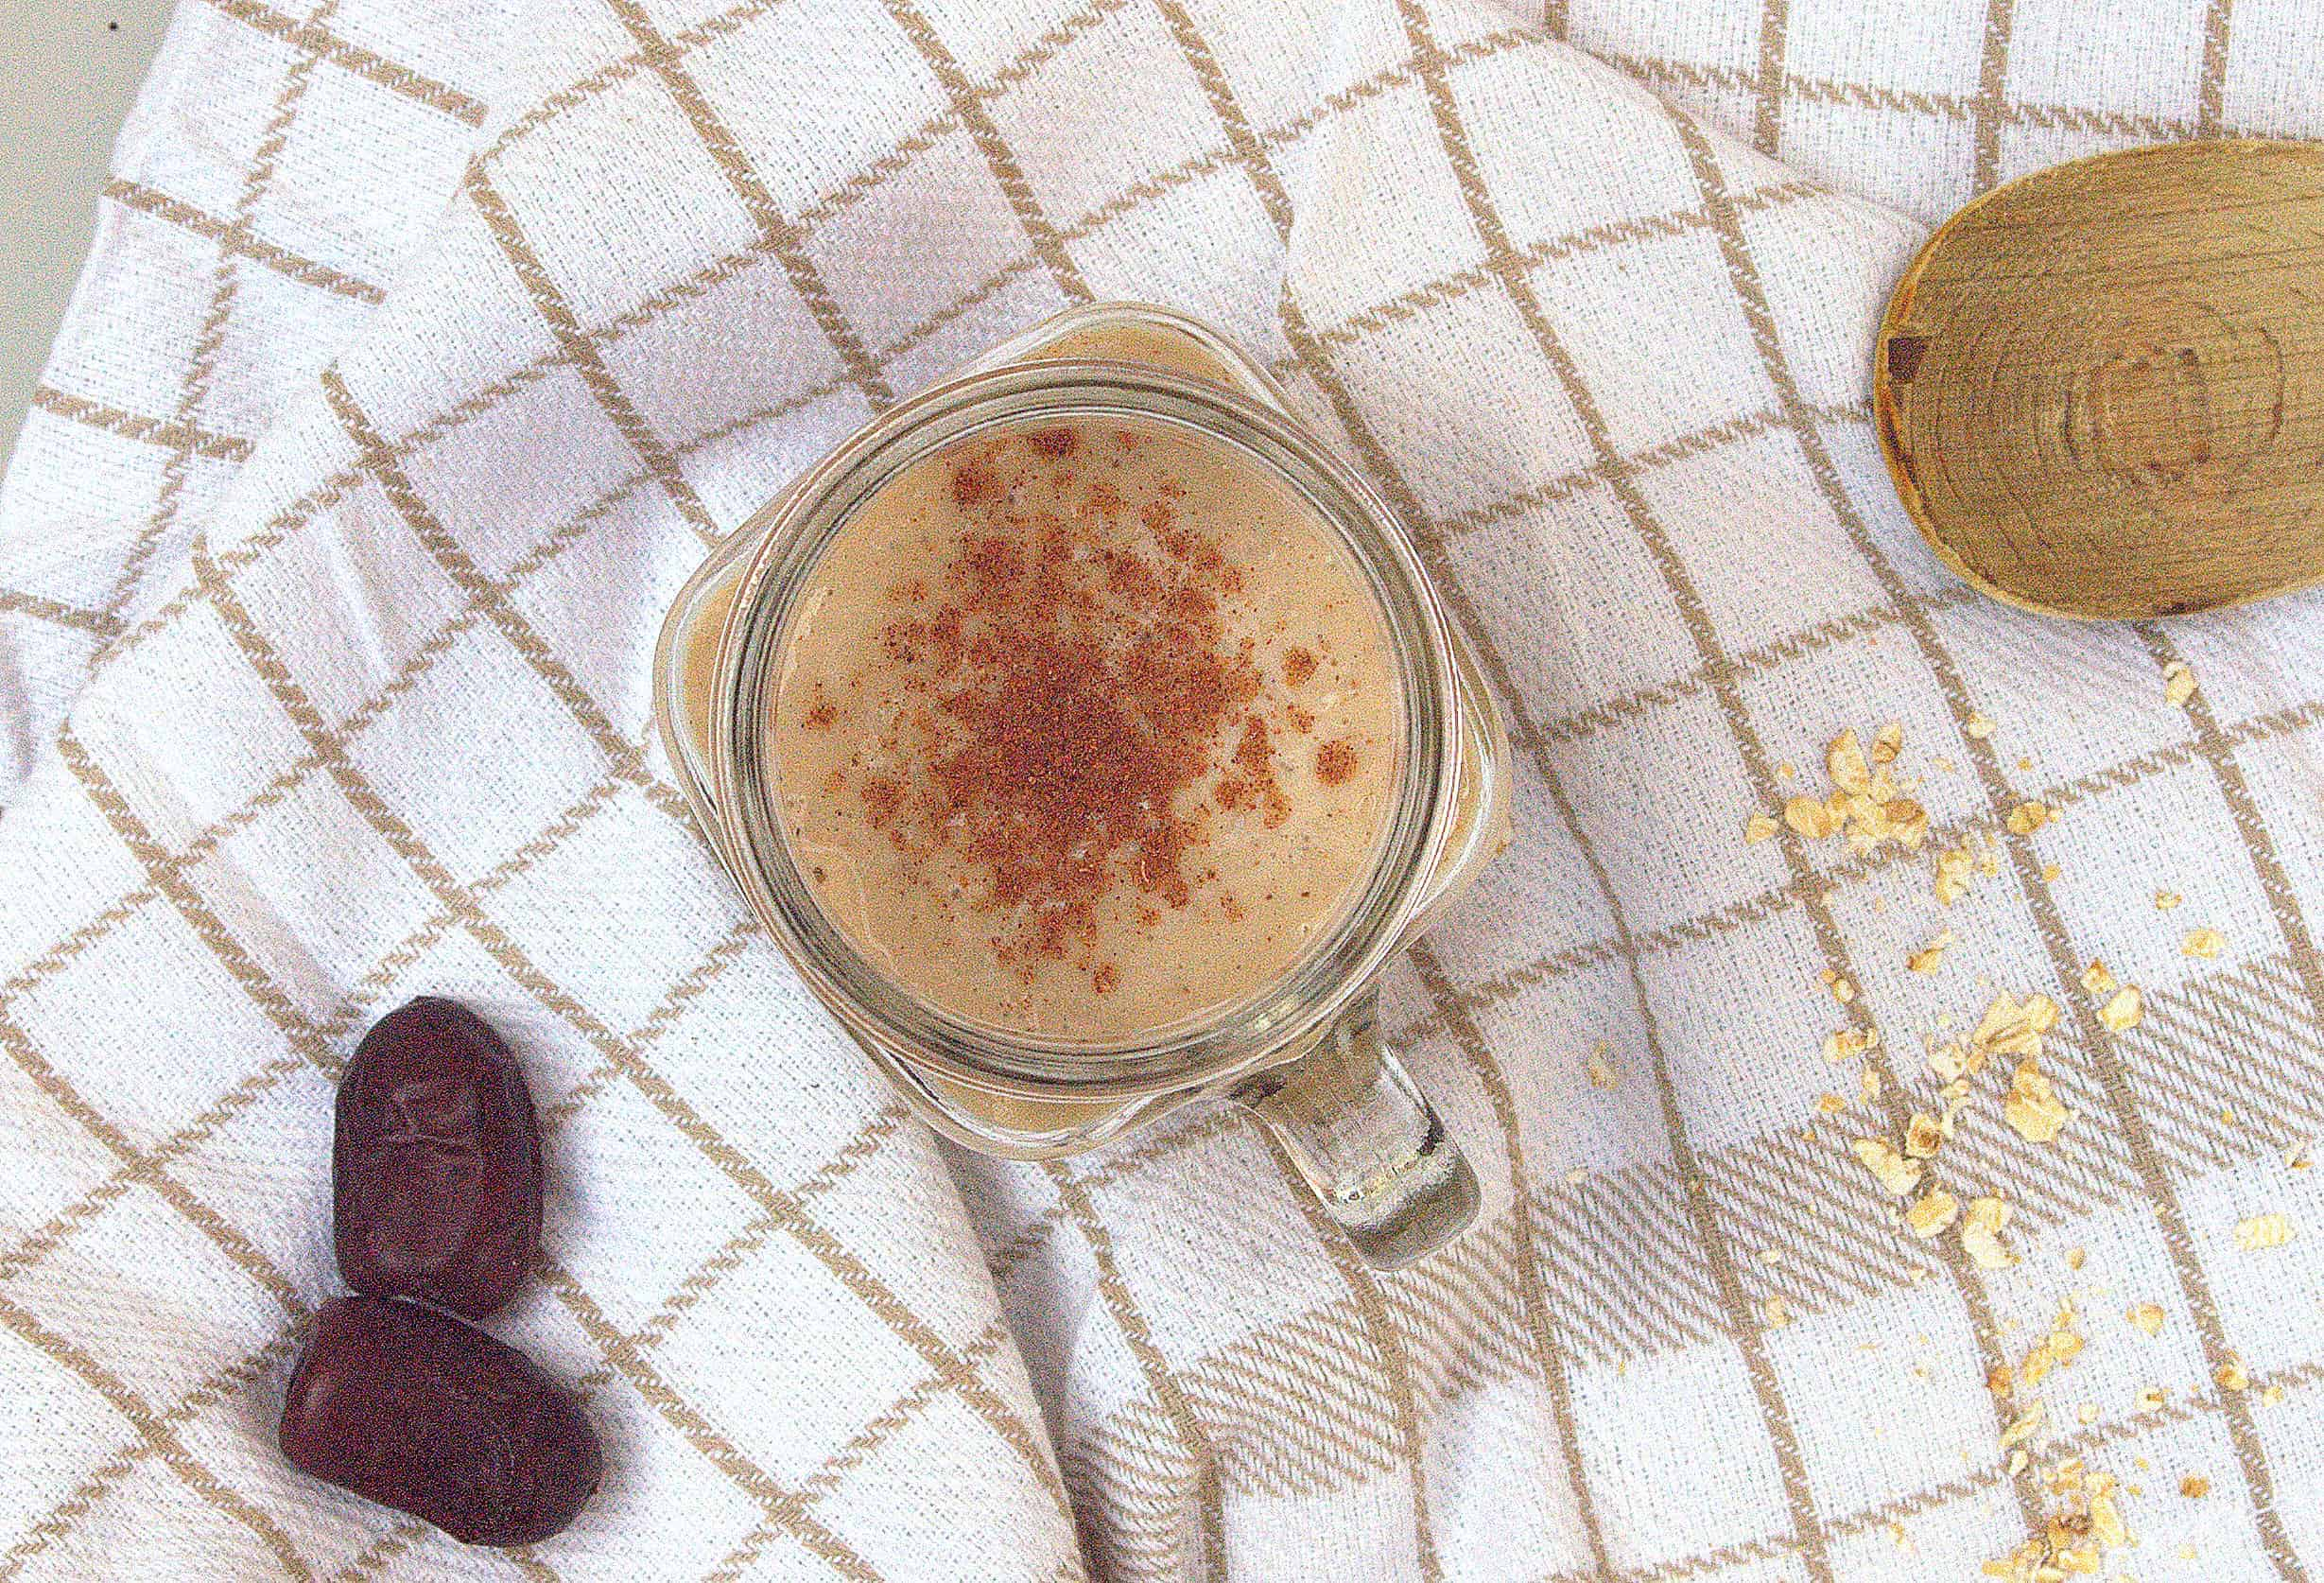 Salted caramel smoothie